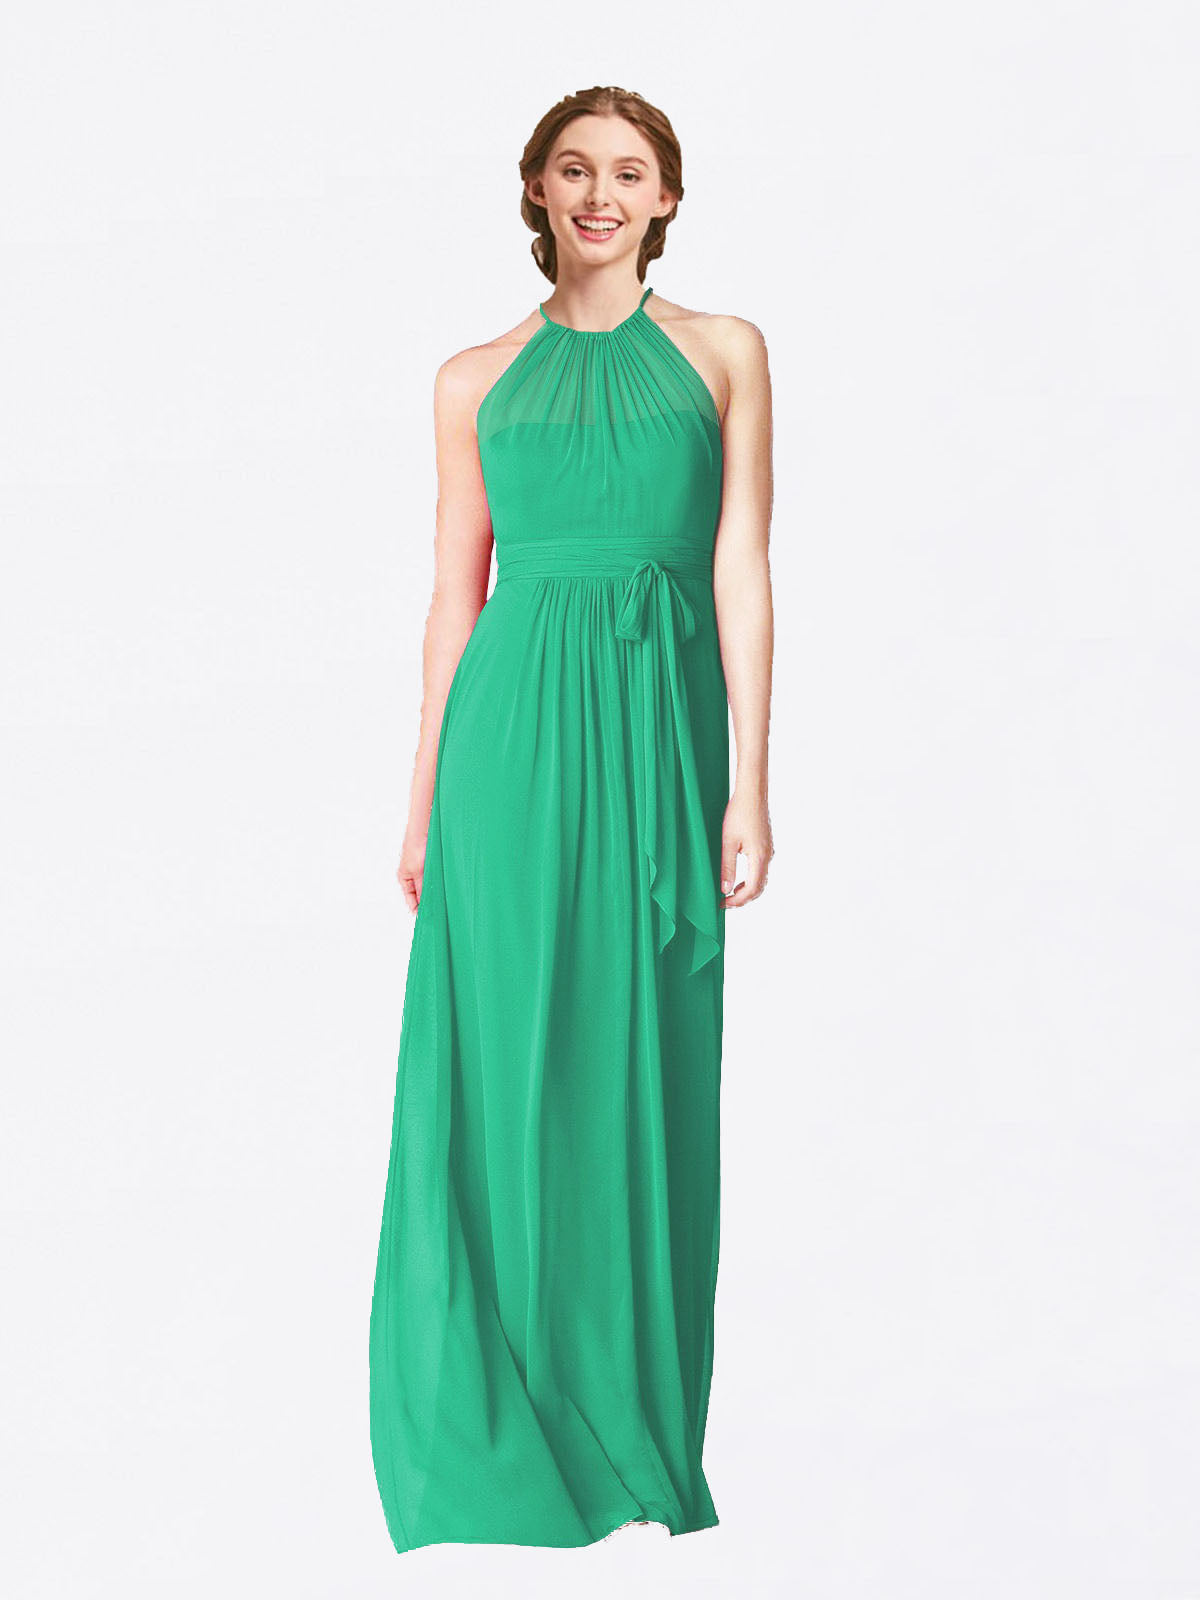 Long A-Line Halter Sleeveless Emerald Green Chiffon Bridesmaid Dress Laura